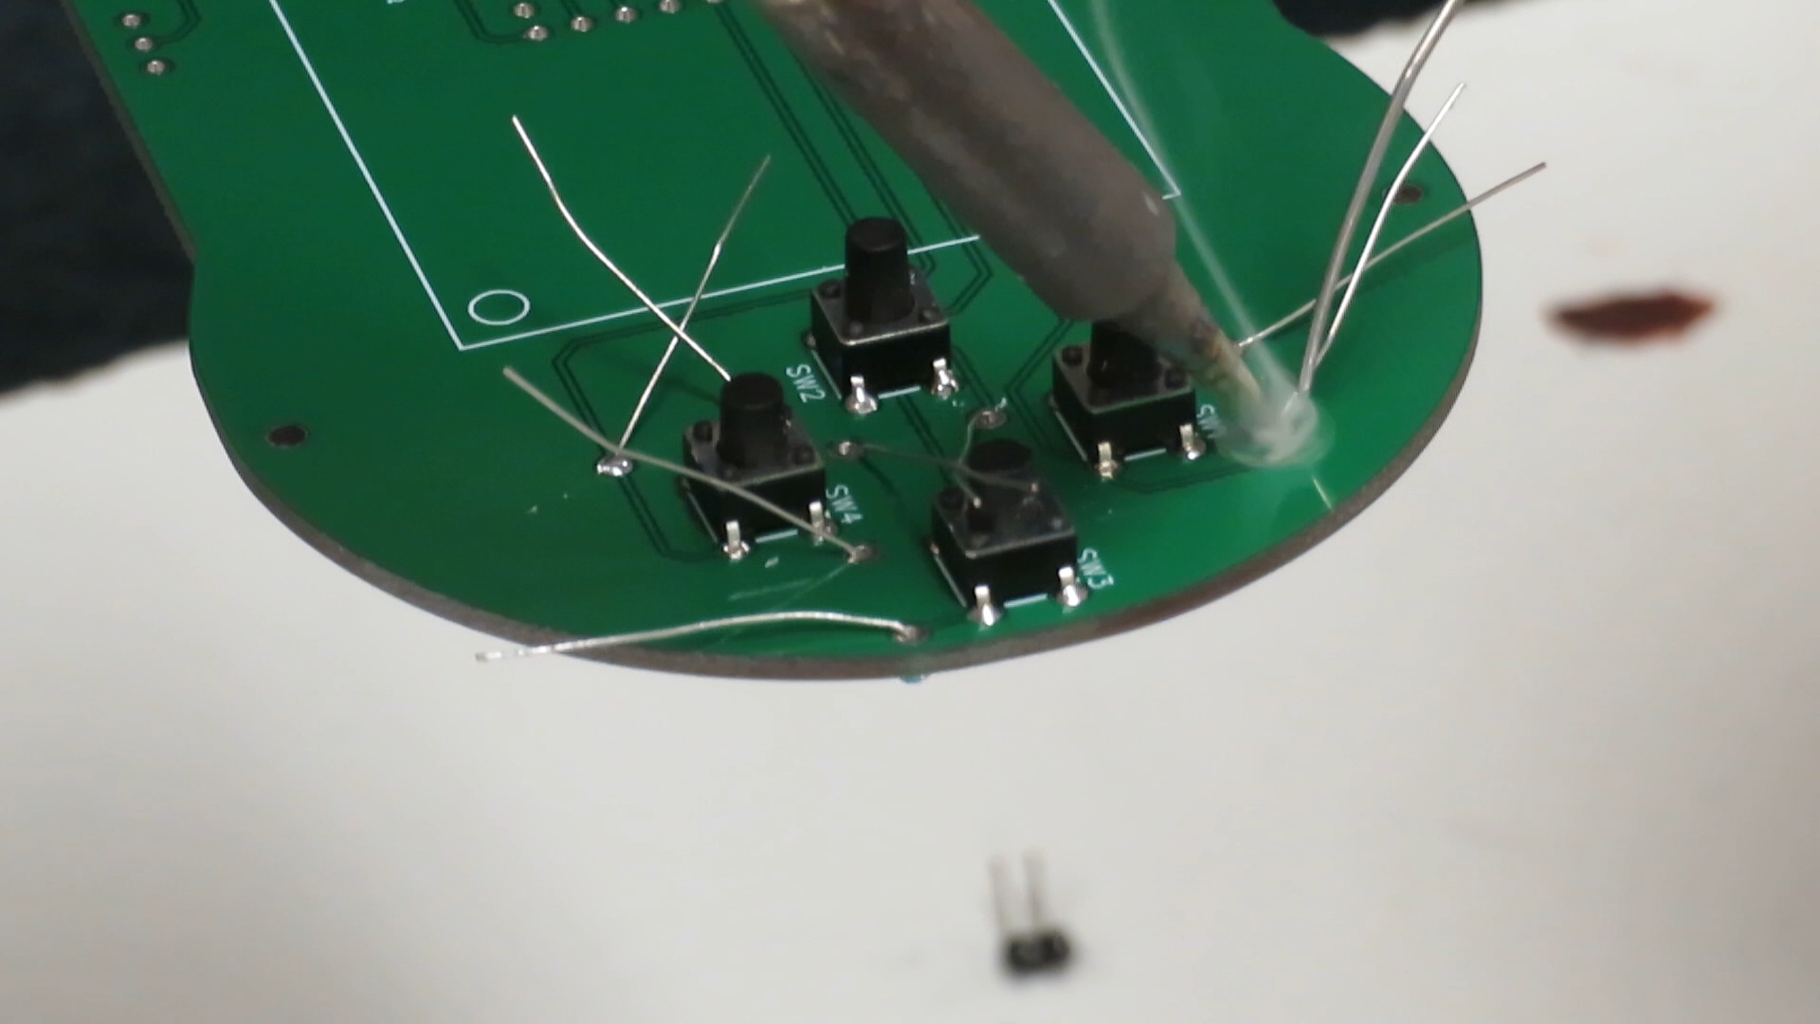 Soldering All Your Components Onto the Board